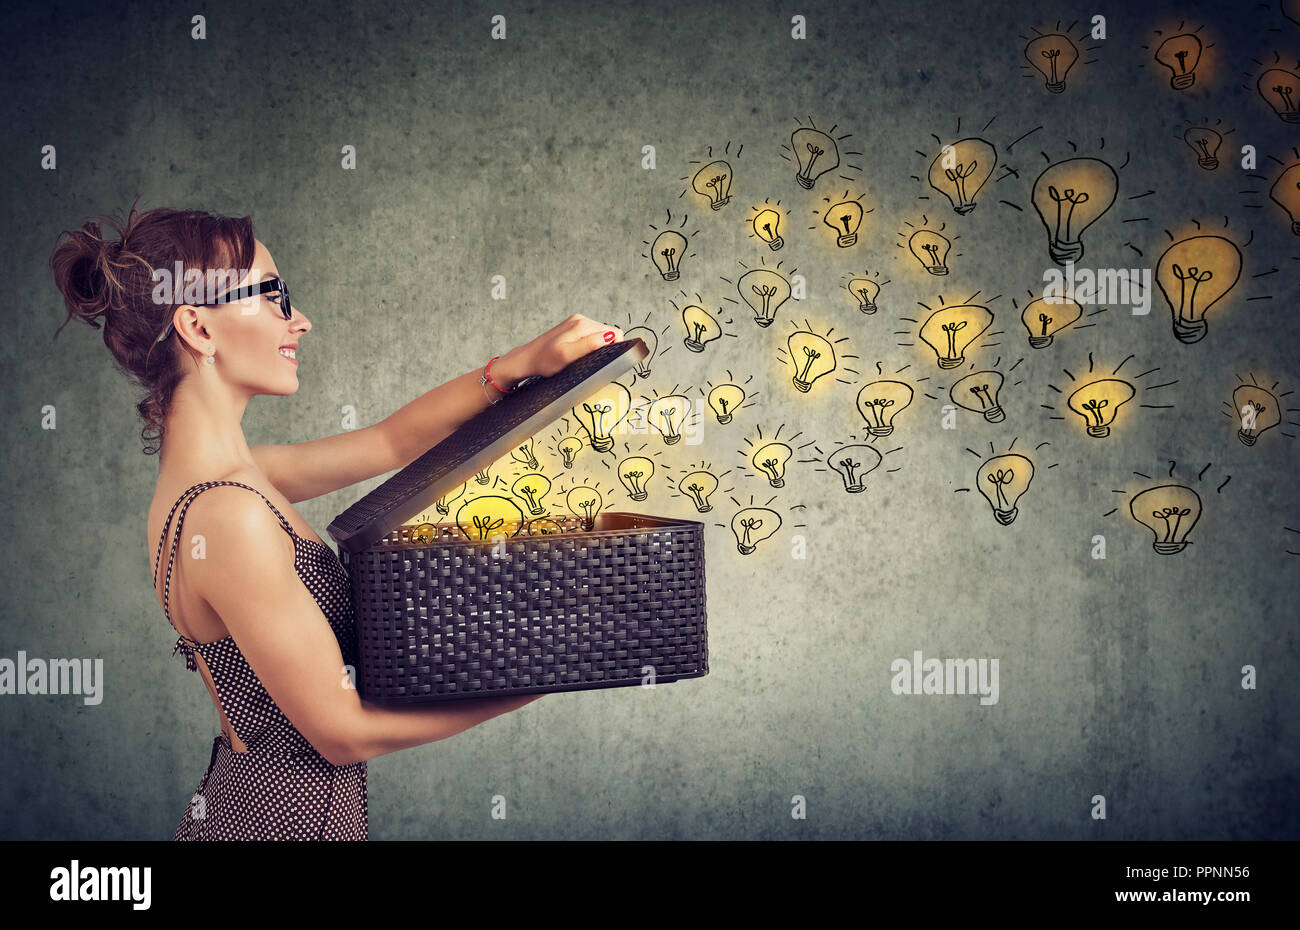 Side view of young happy woman holding a box with brilliant ideas spreading knowledge - Stock Image